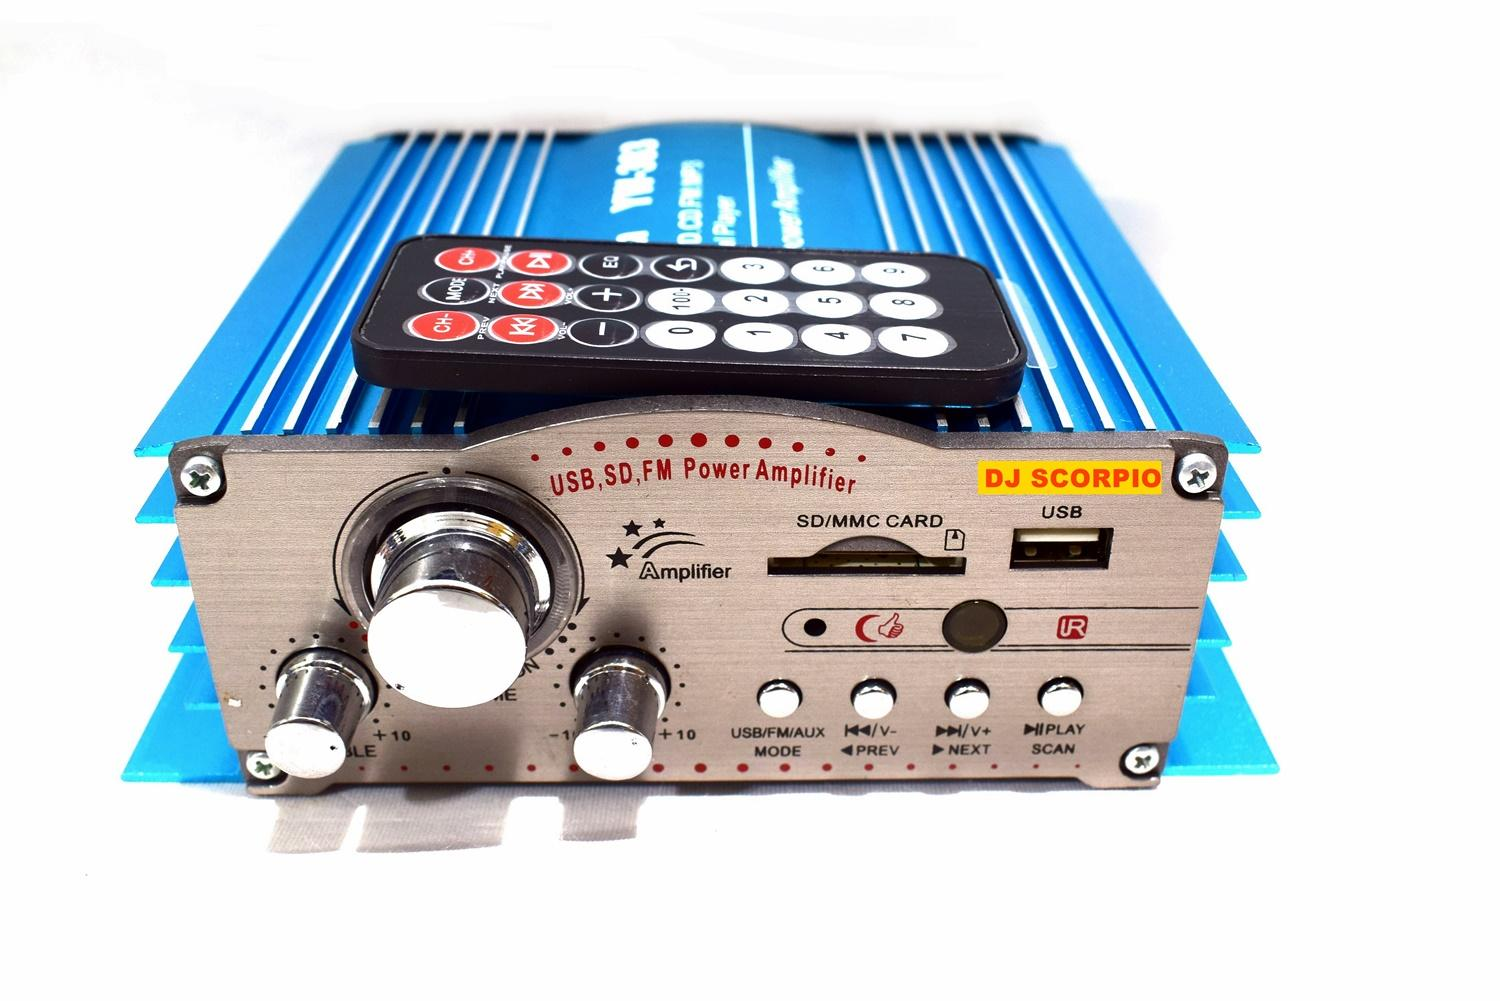 Car Amplifier For Sale Audio Online Brands Prices Small Motorcycle Fuse Box Dj Scorpio Dc 12v 200 W X 4 Channel Motor